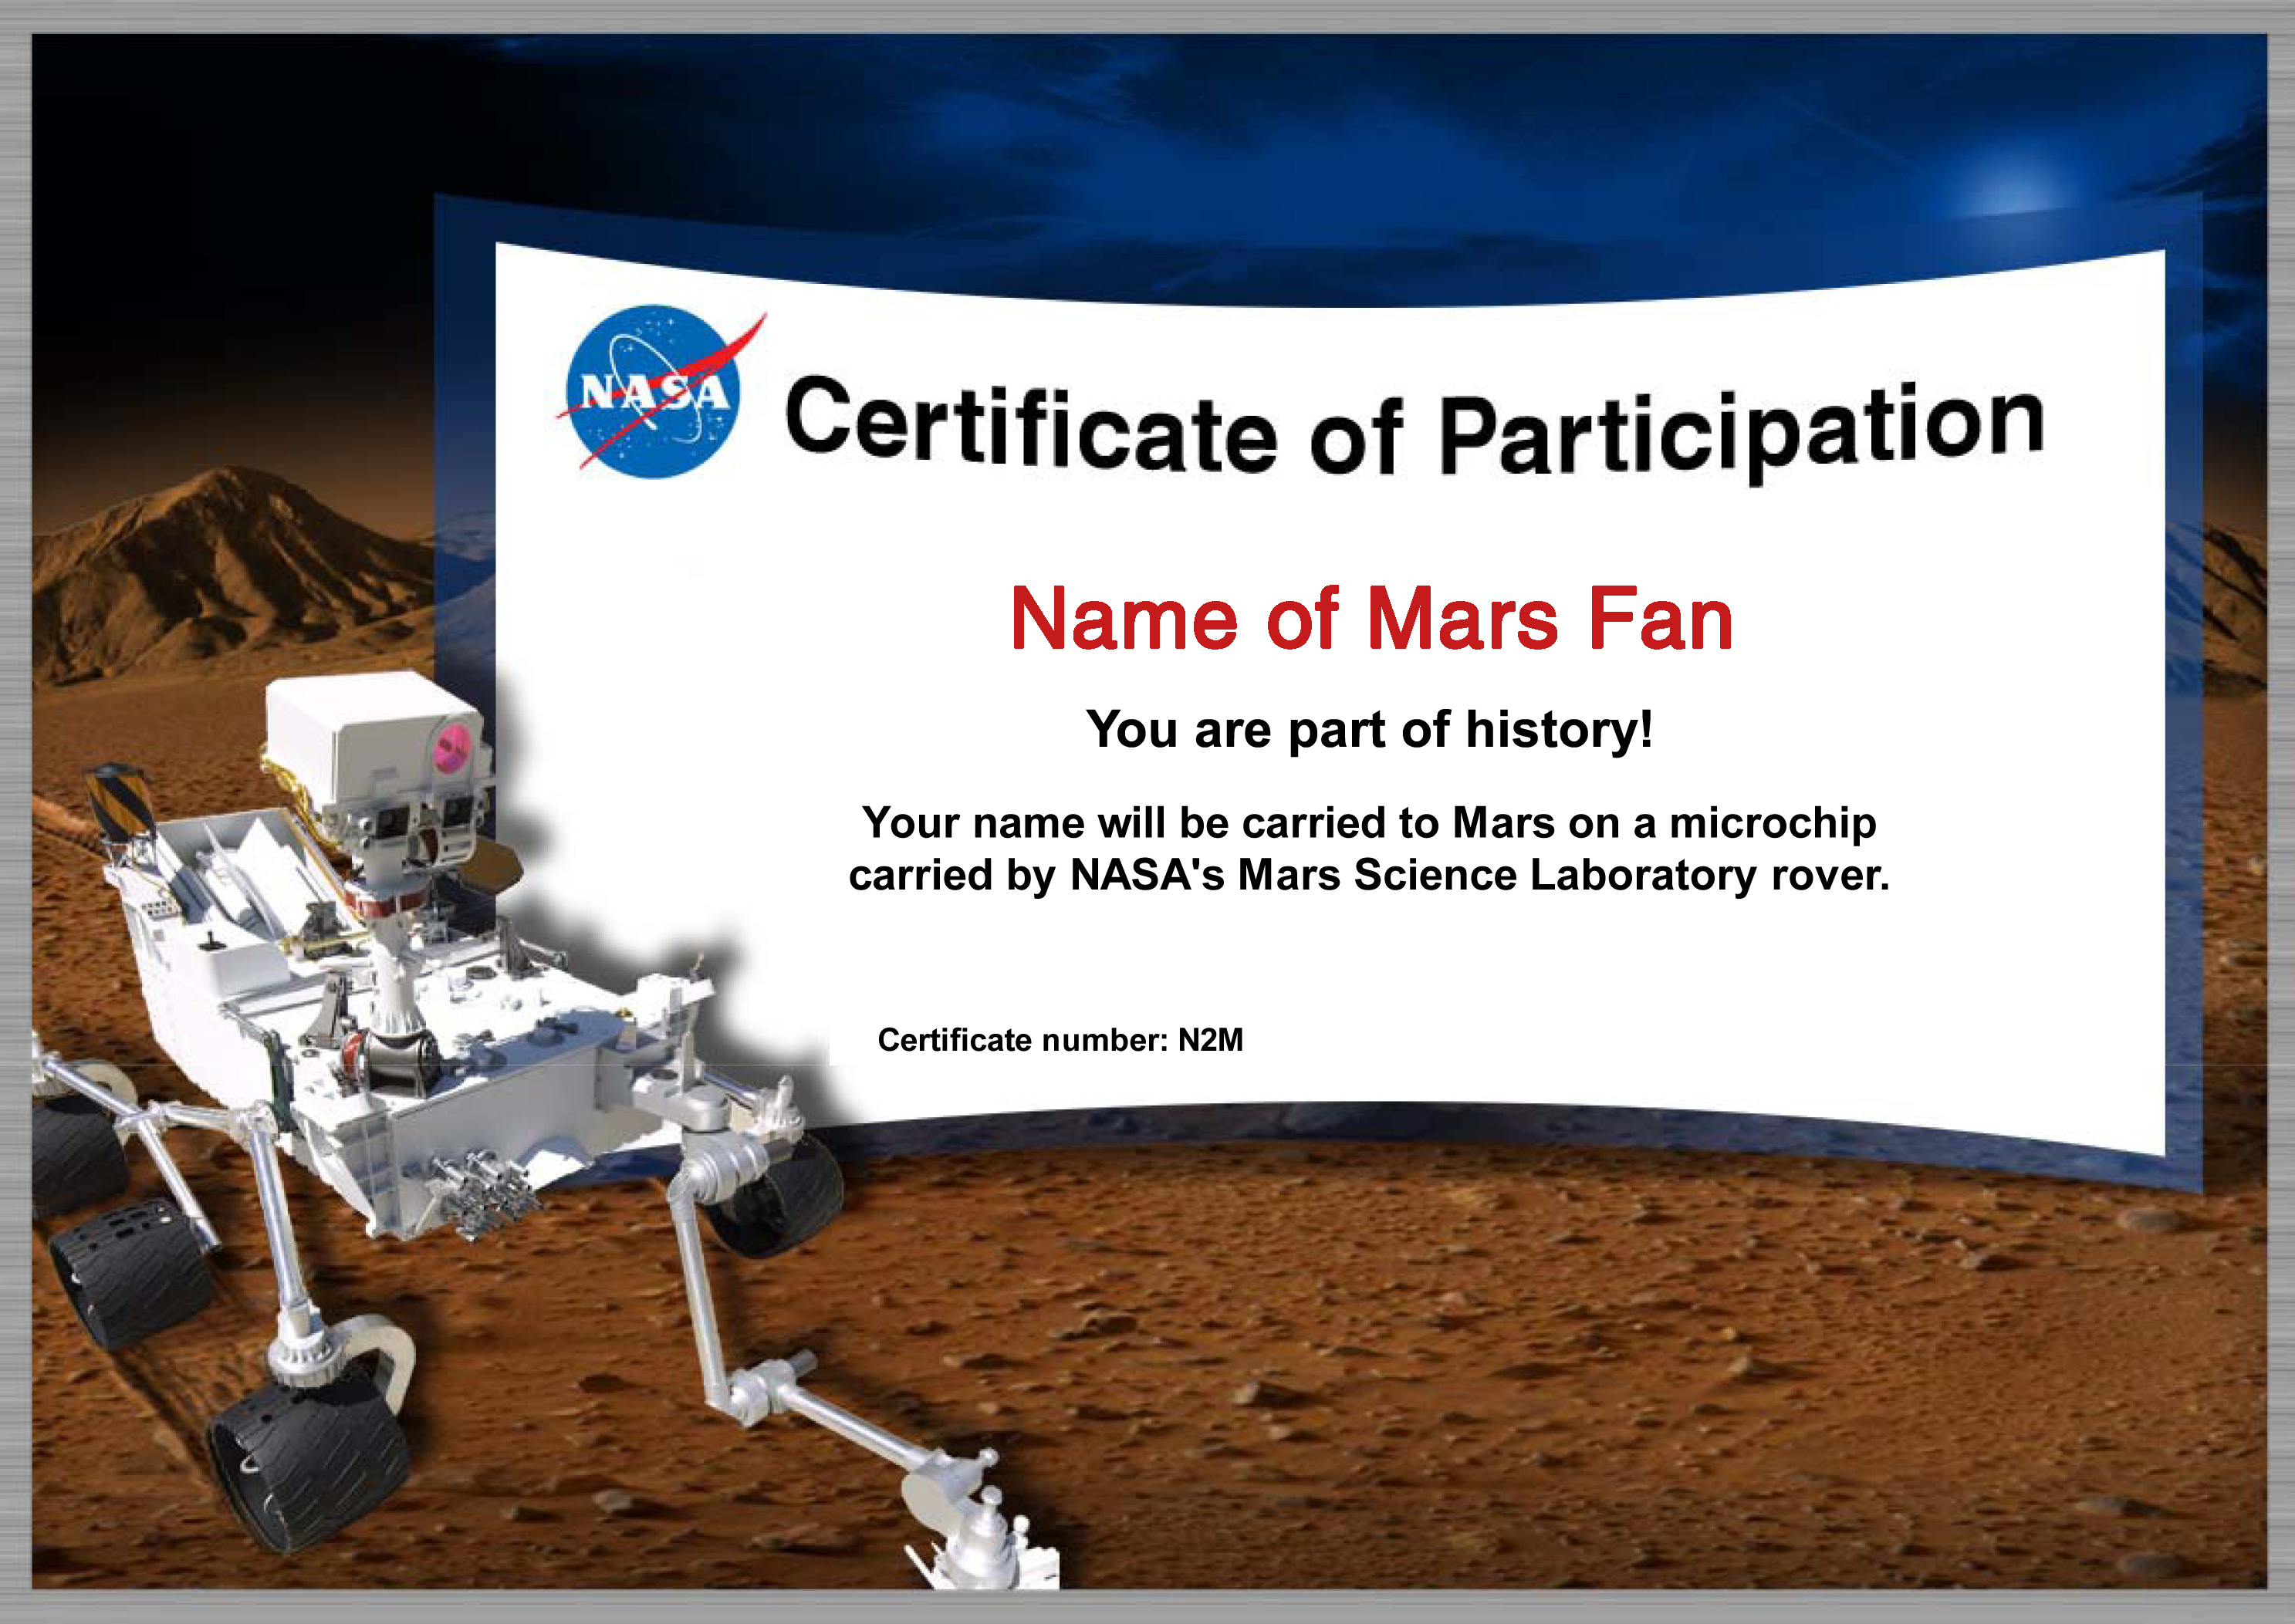 Mars planet facts news images nasa mars rover mission info download alramifo Images